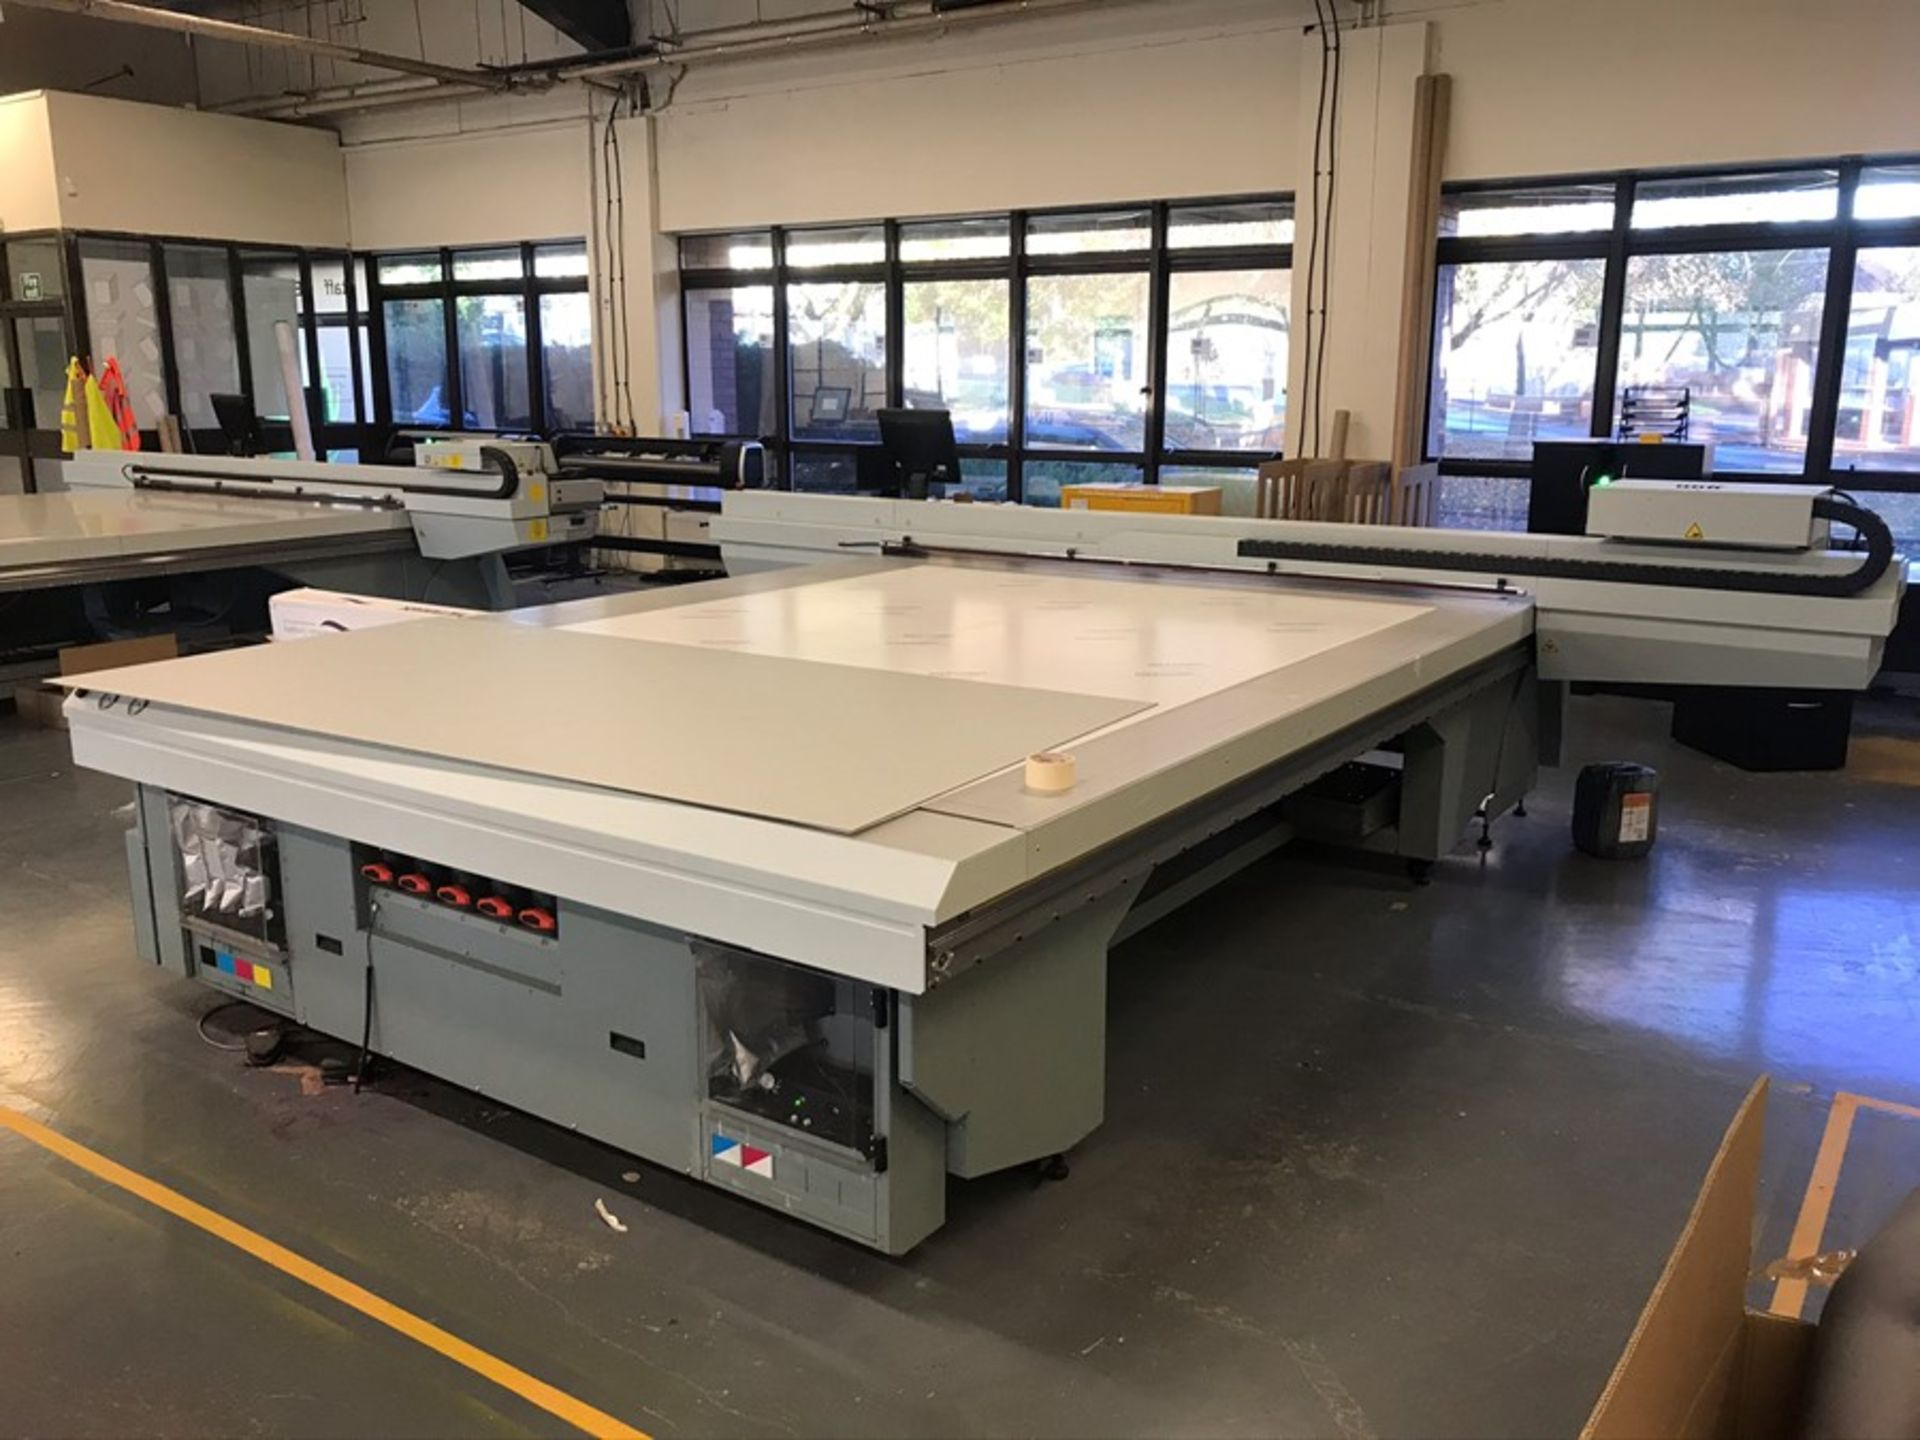 Oce Arizona 660 XT UV flatbed printer (2015)